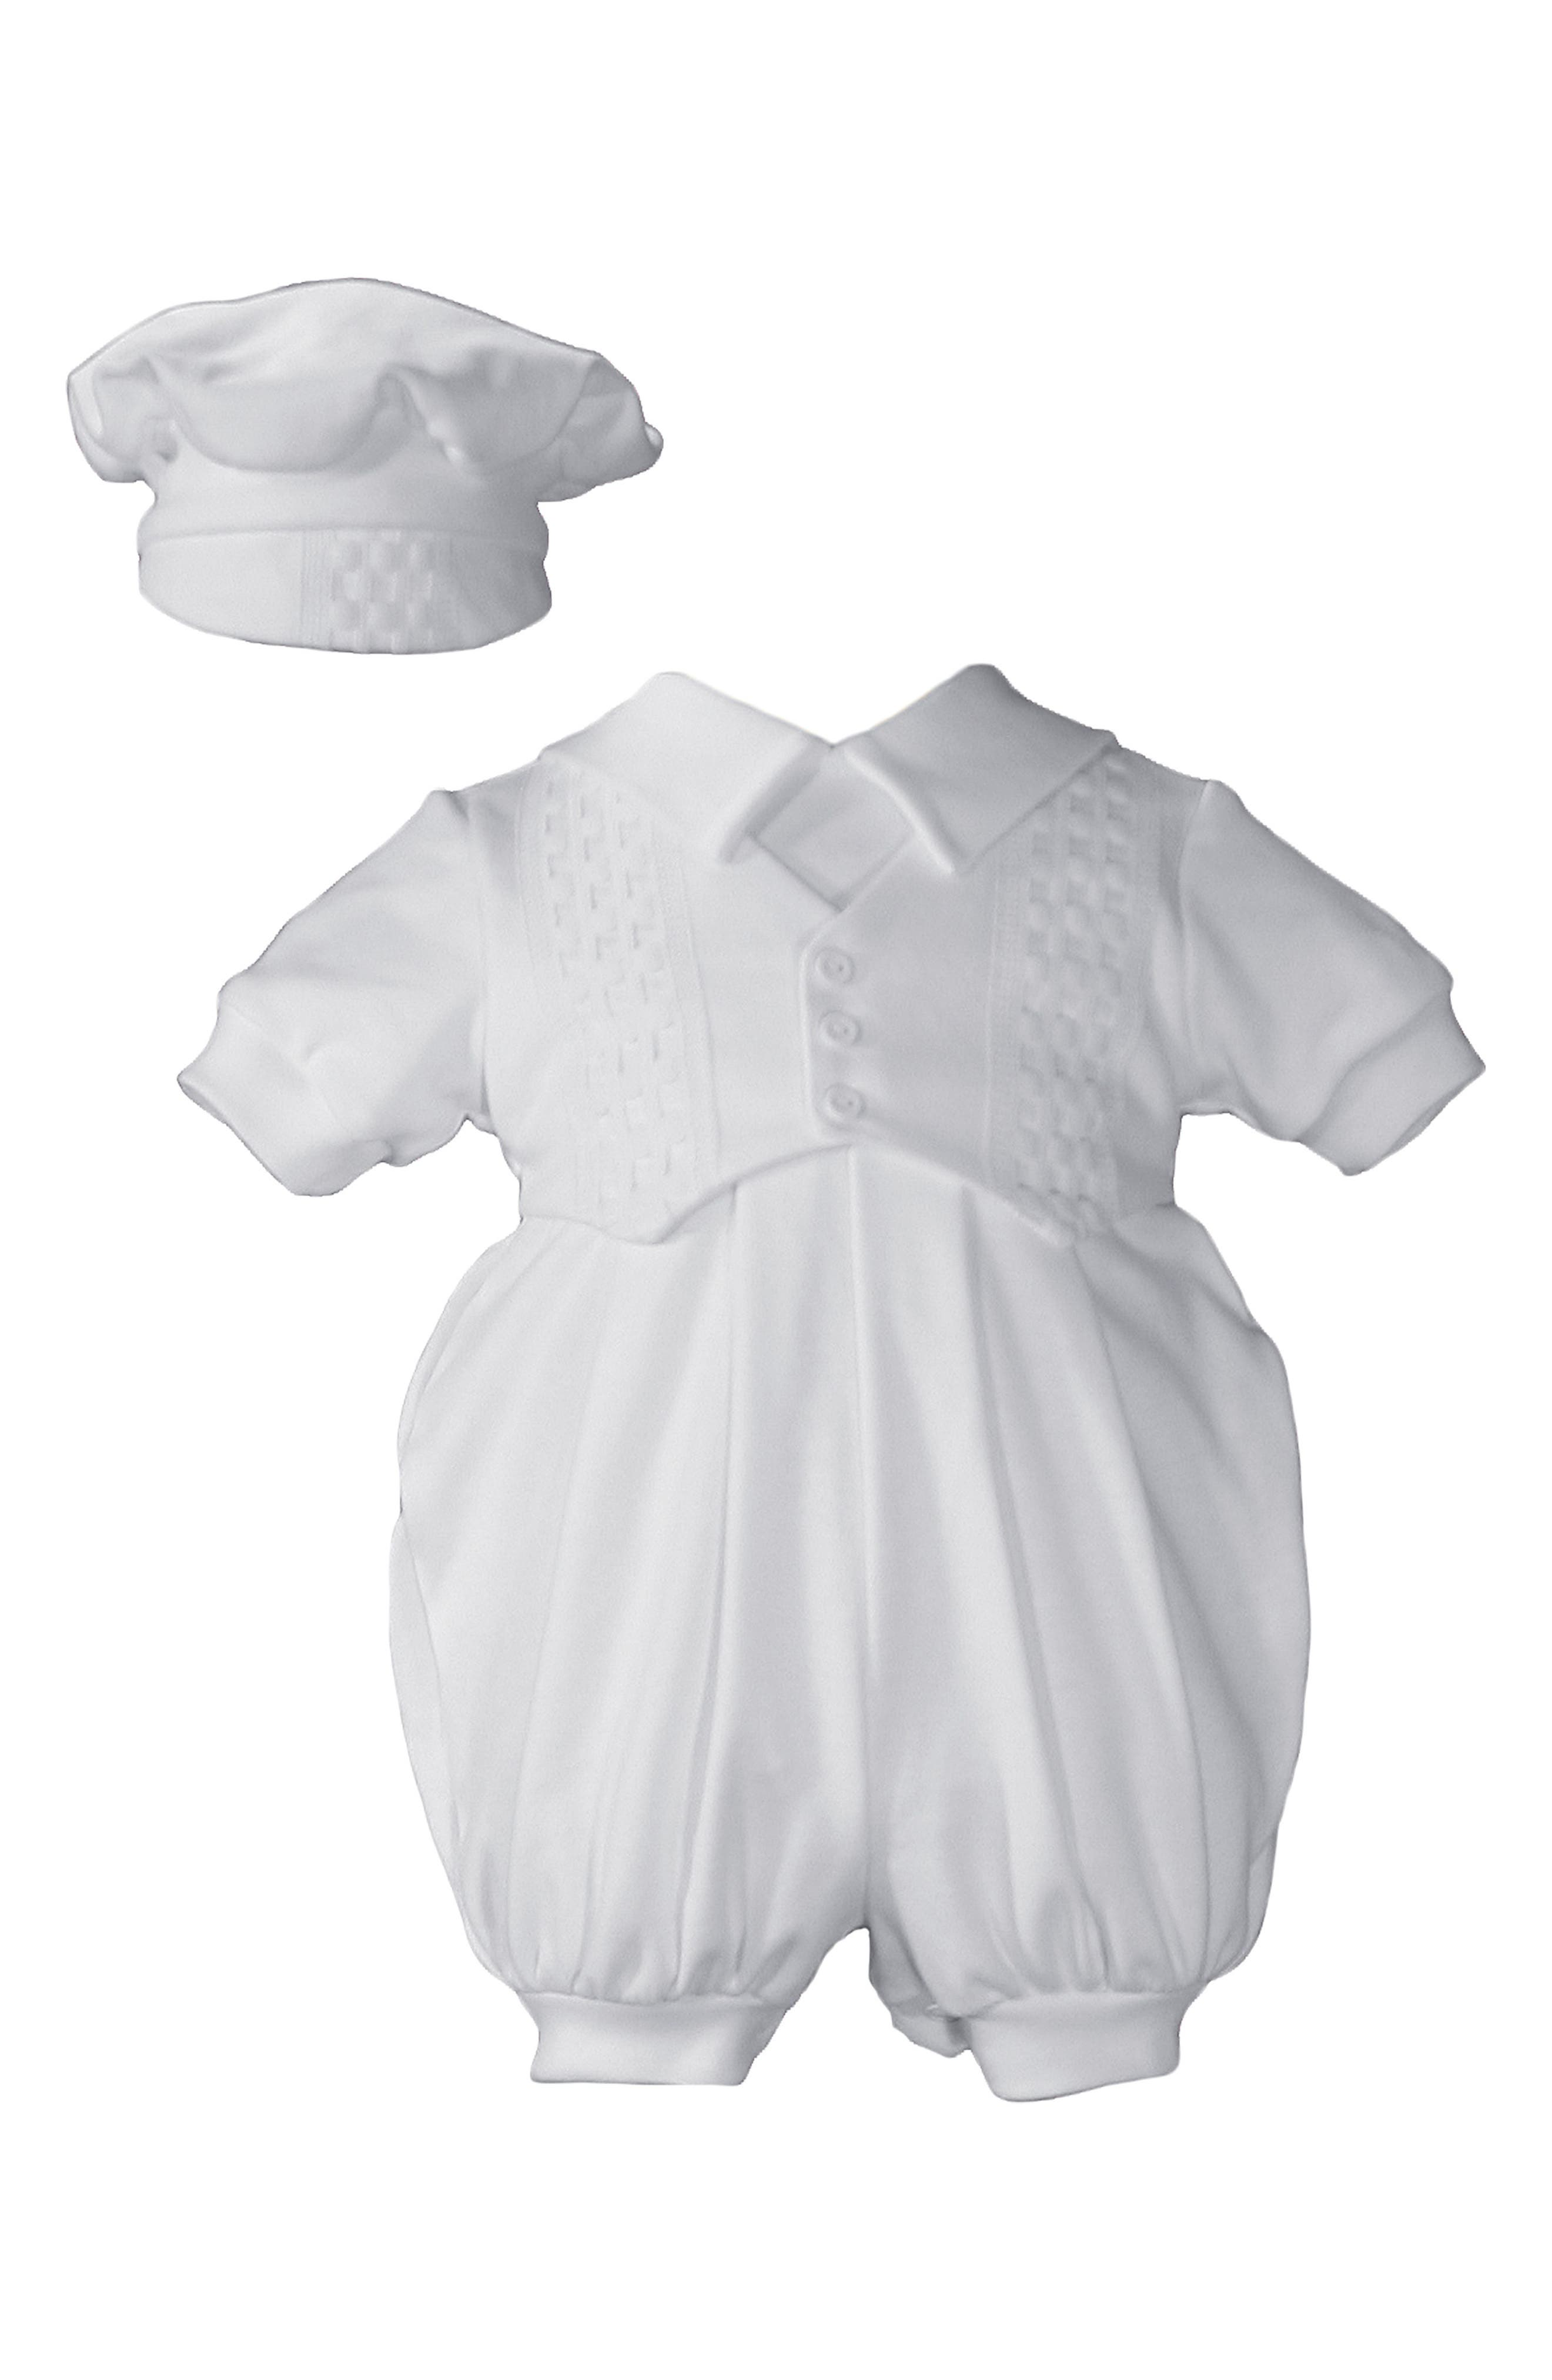 Main Image - Little Things Mean A Lot Romper & Hat Set (Baby Boys)